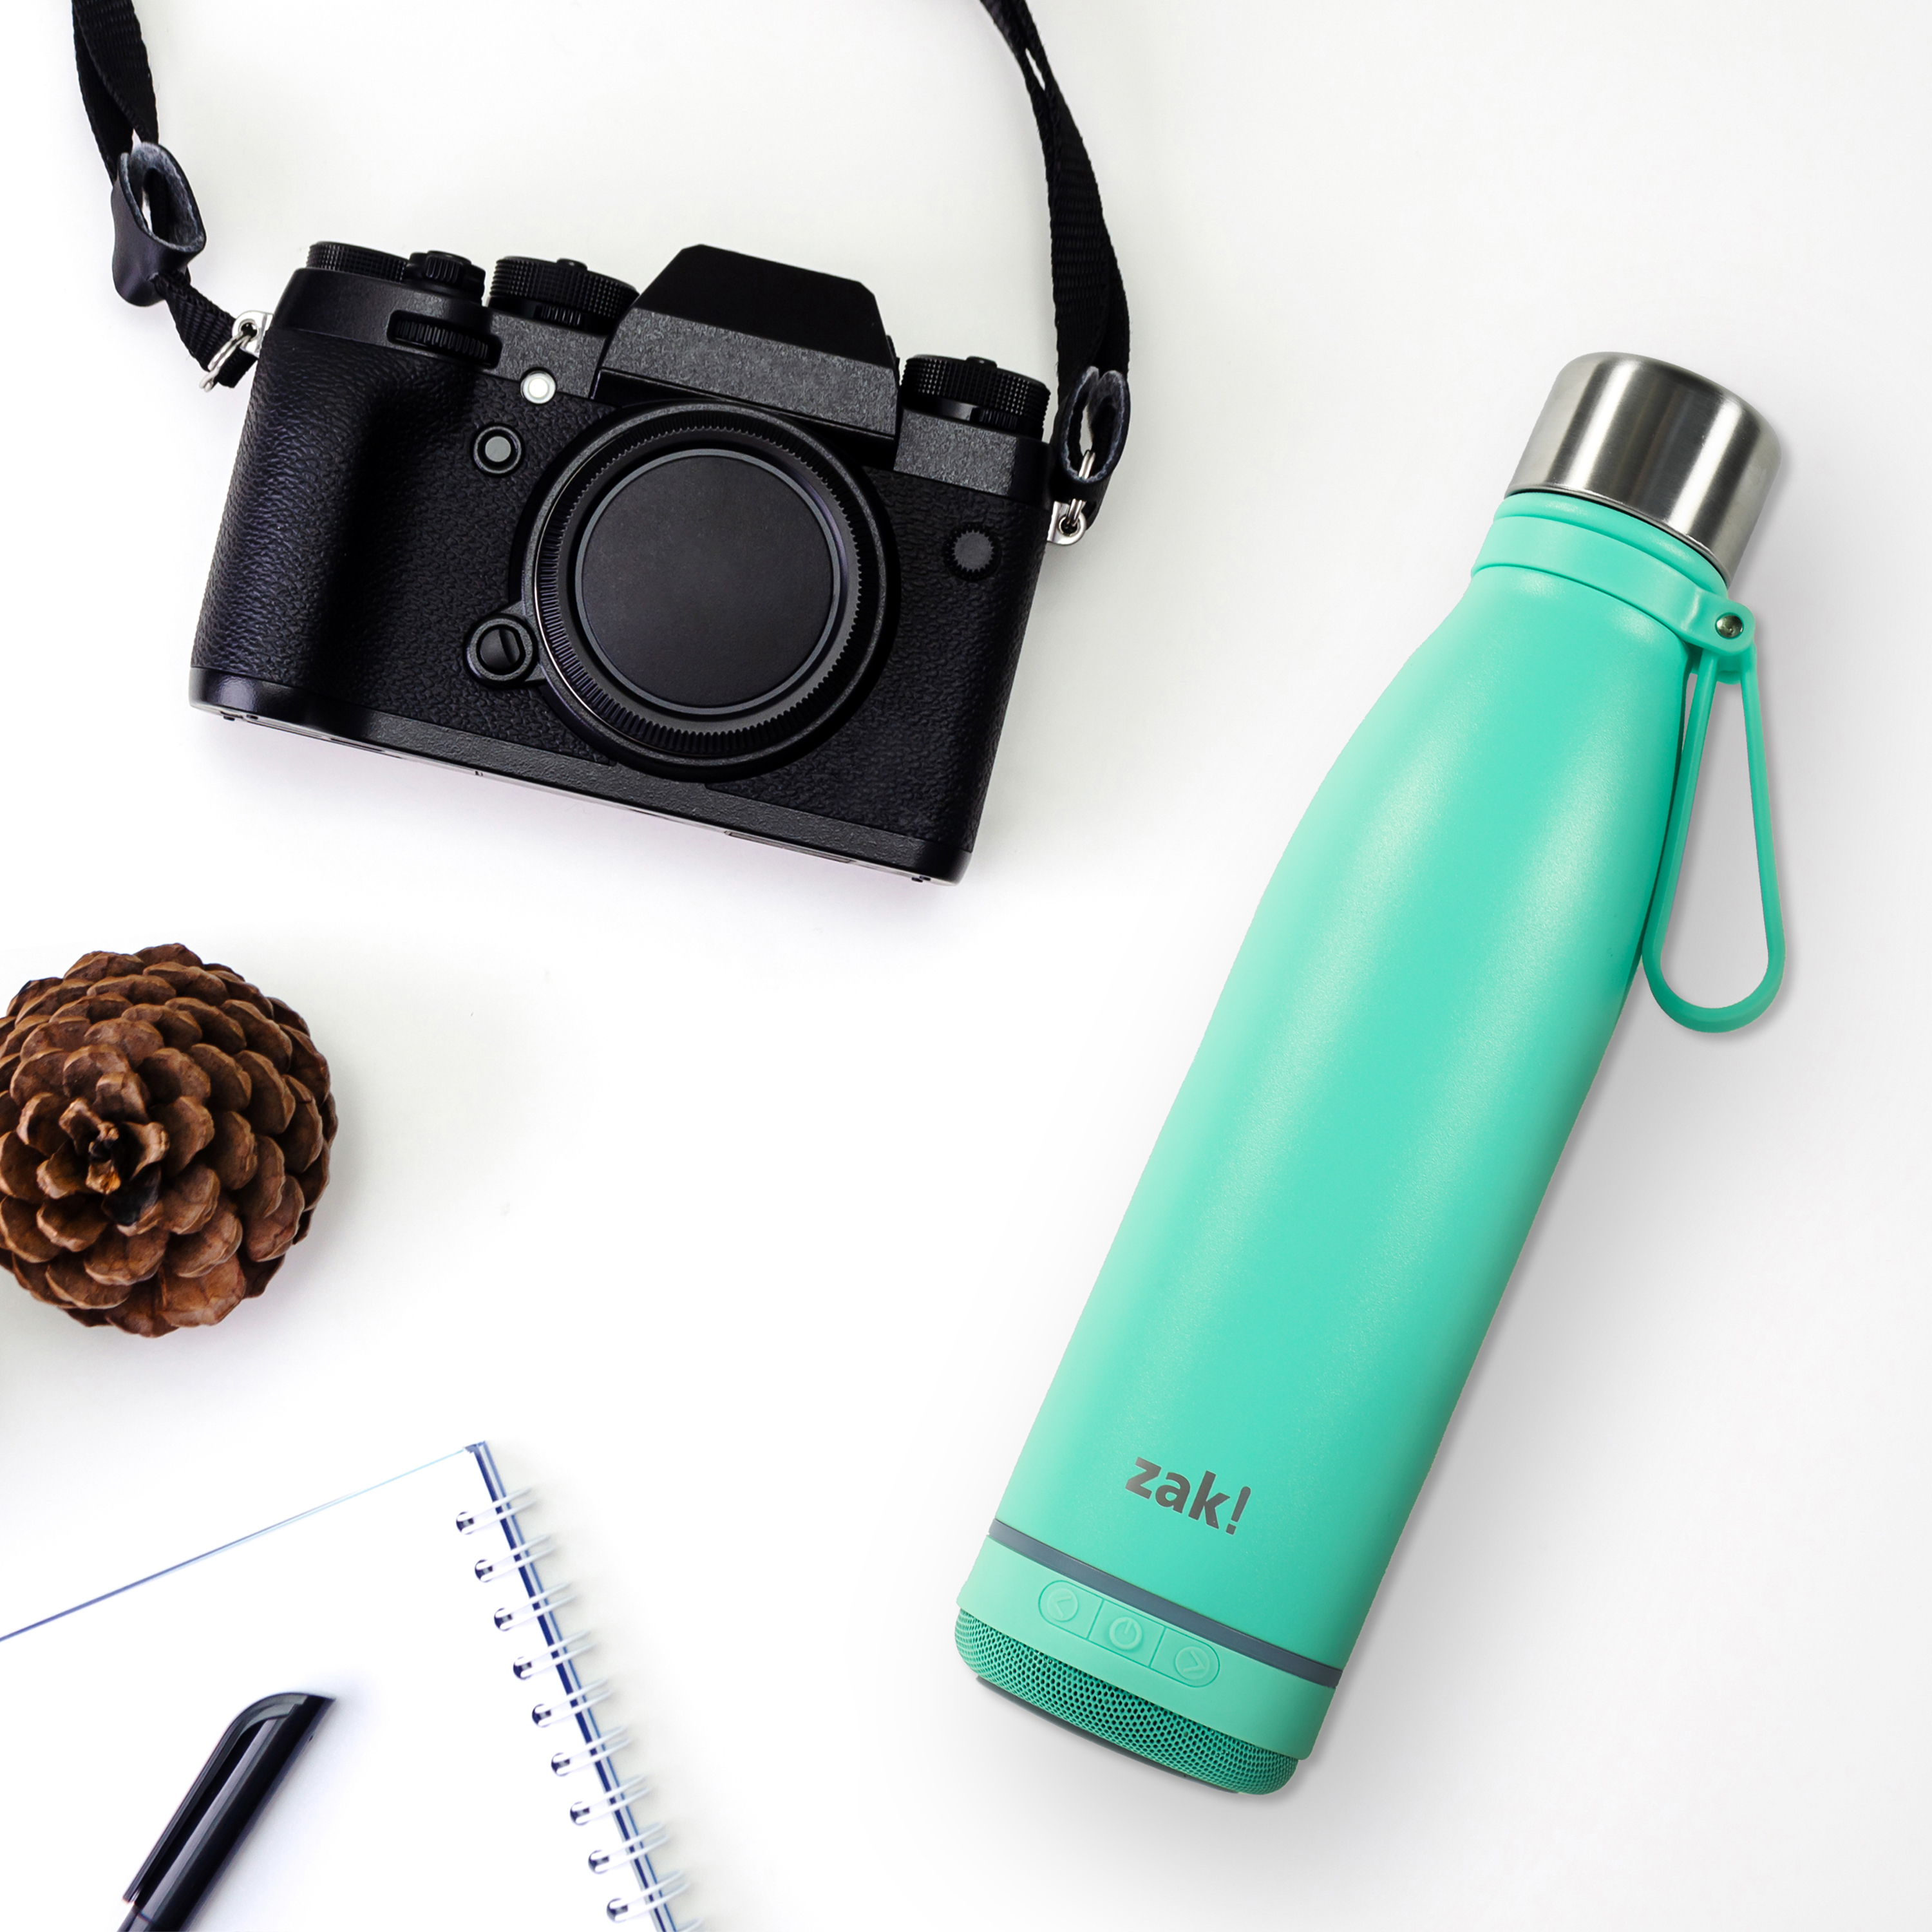 Zak Play 17.5 ounce Stainless Steel Tumbler with Bluetooth Speaker, Teal slideshow image 5